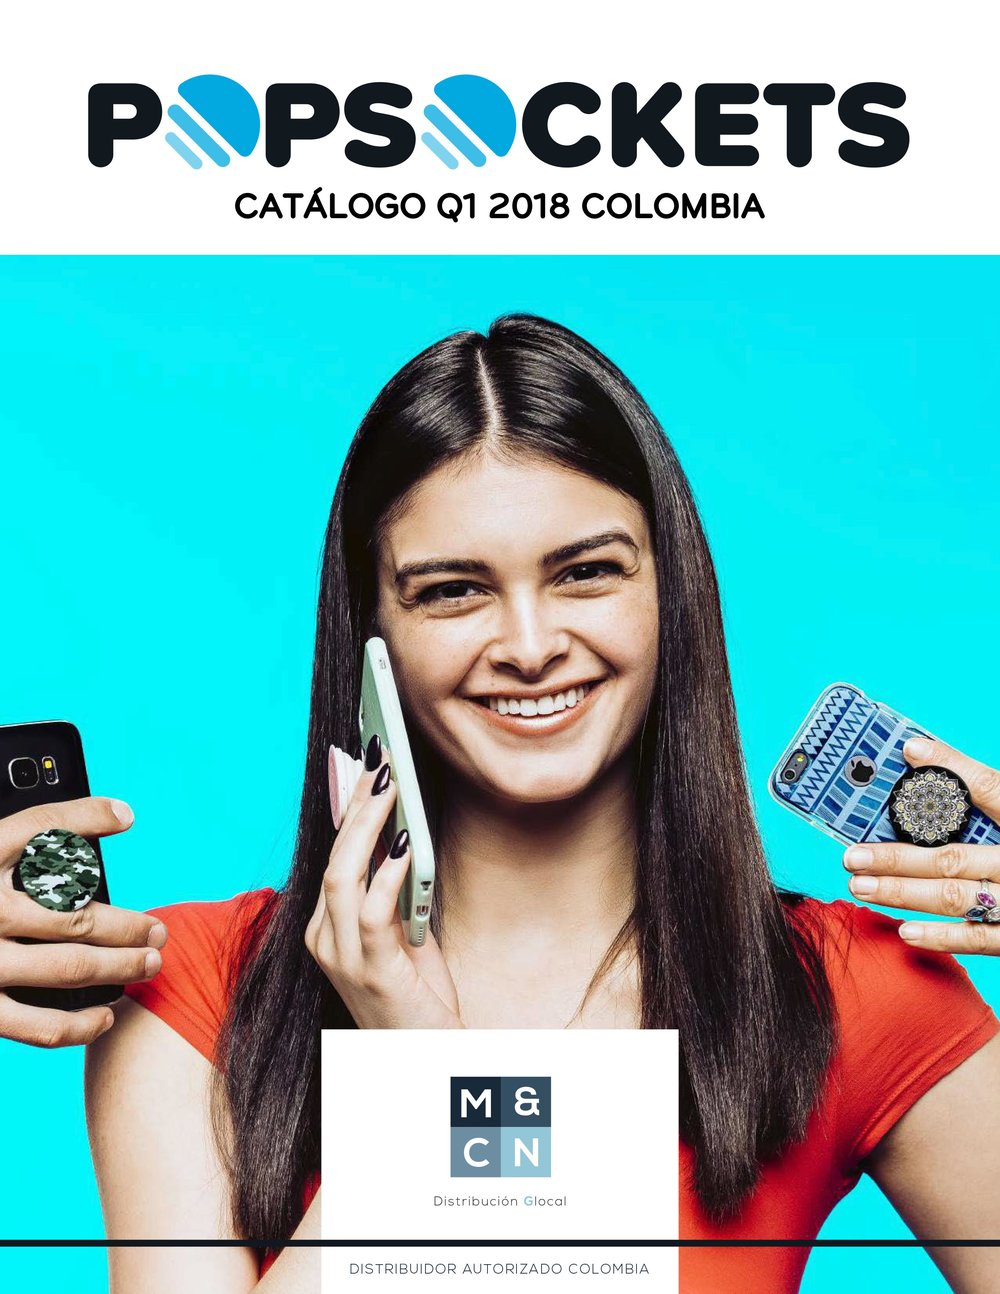 CATALOGO-POPSOCKETS-1.jpg